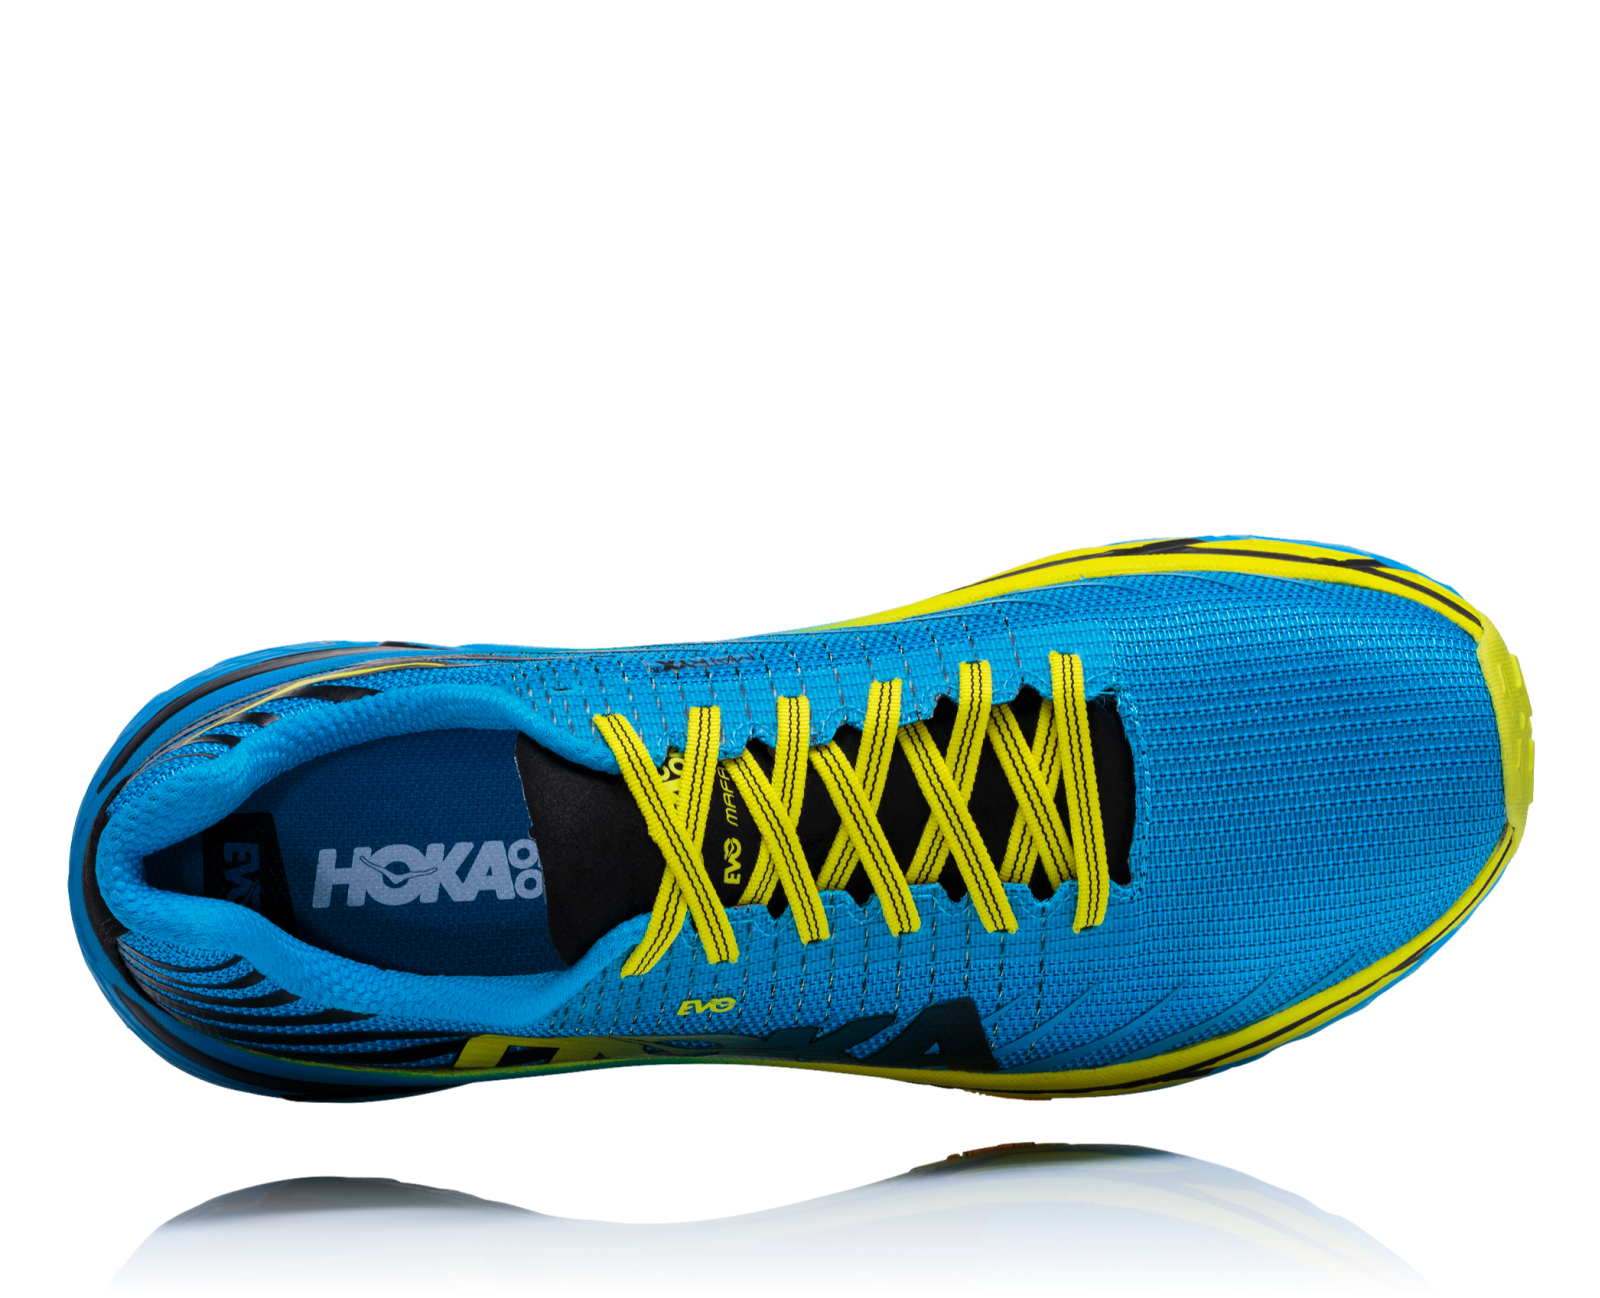 official photos 7f849 85bf4 HOKA One One HOKA One One EVO Mafate (M)